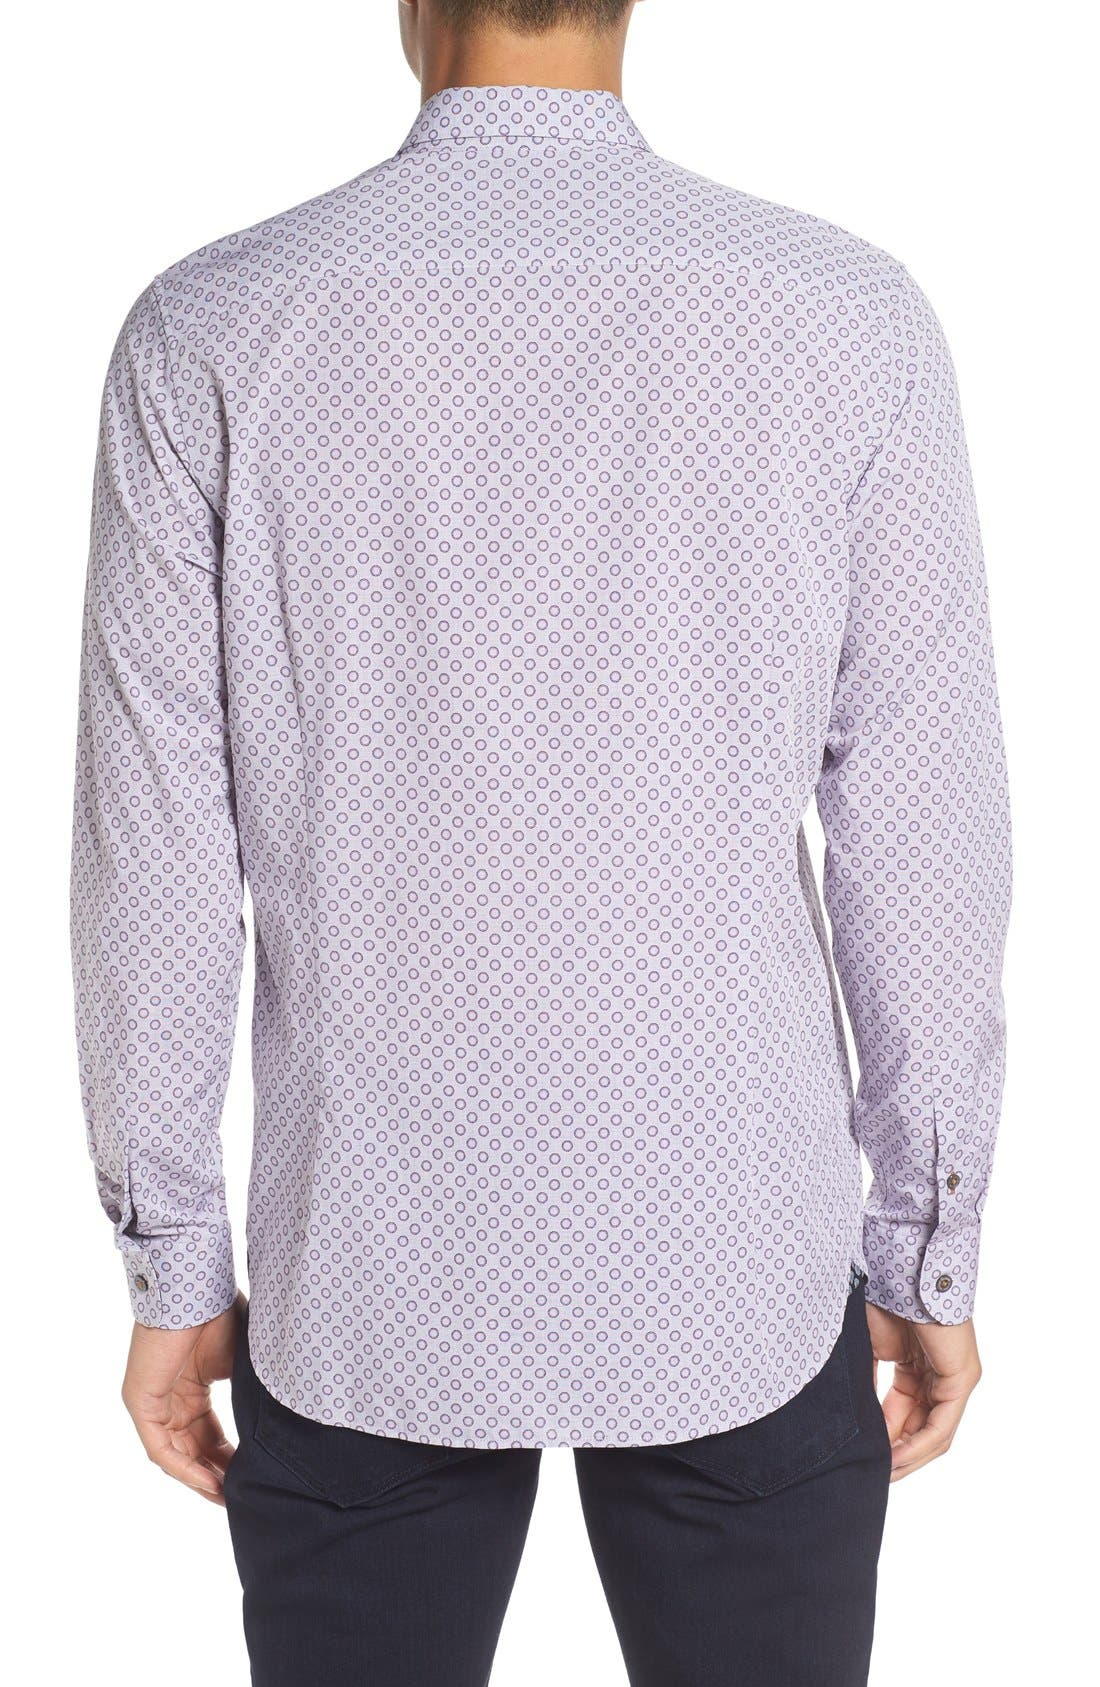 TED BAKER LONDON,                             'Thegril' Trim Fit Print Sport Shirt,                             Alternate thumbnail 2, color,                             510